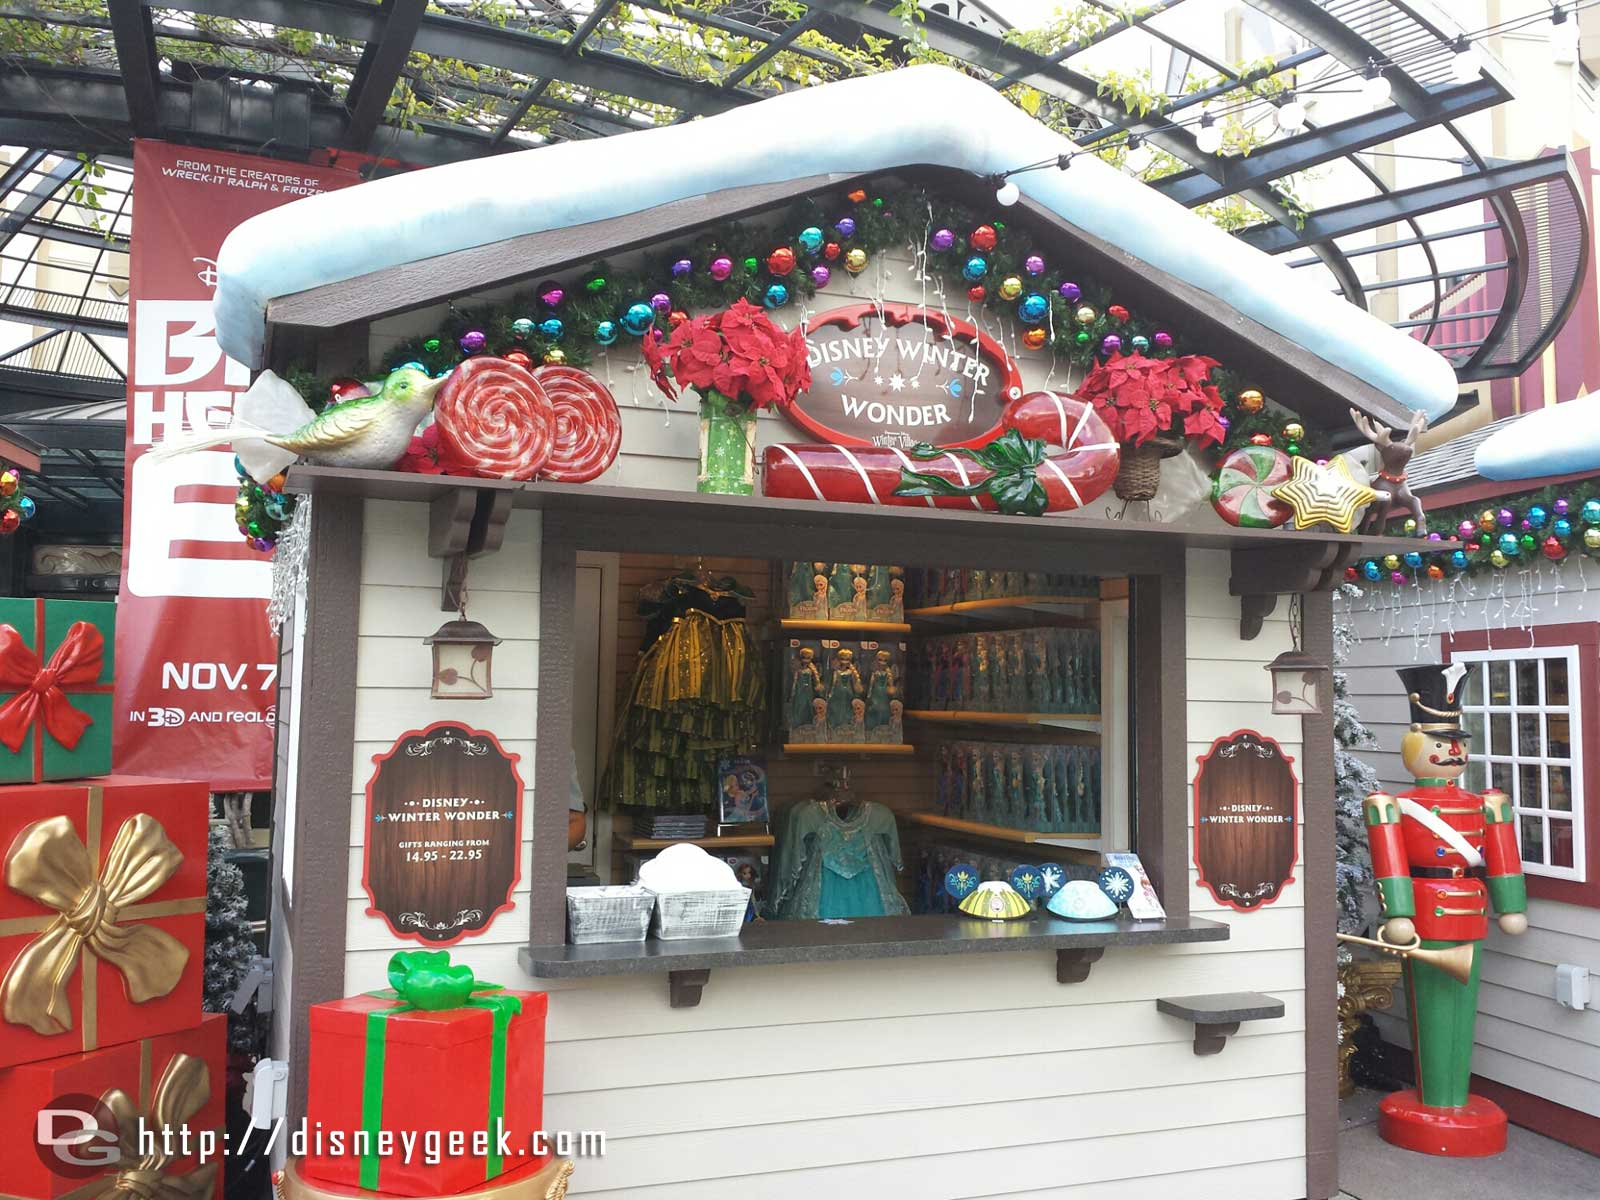 The Disney Winter Wonder store features #Frozen merchandise